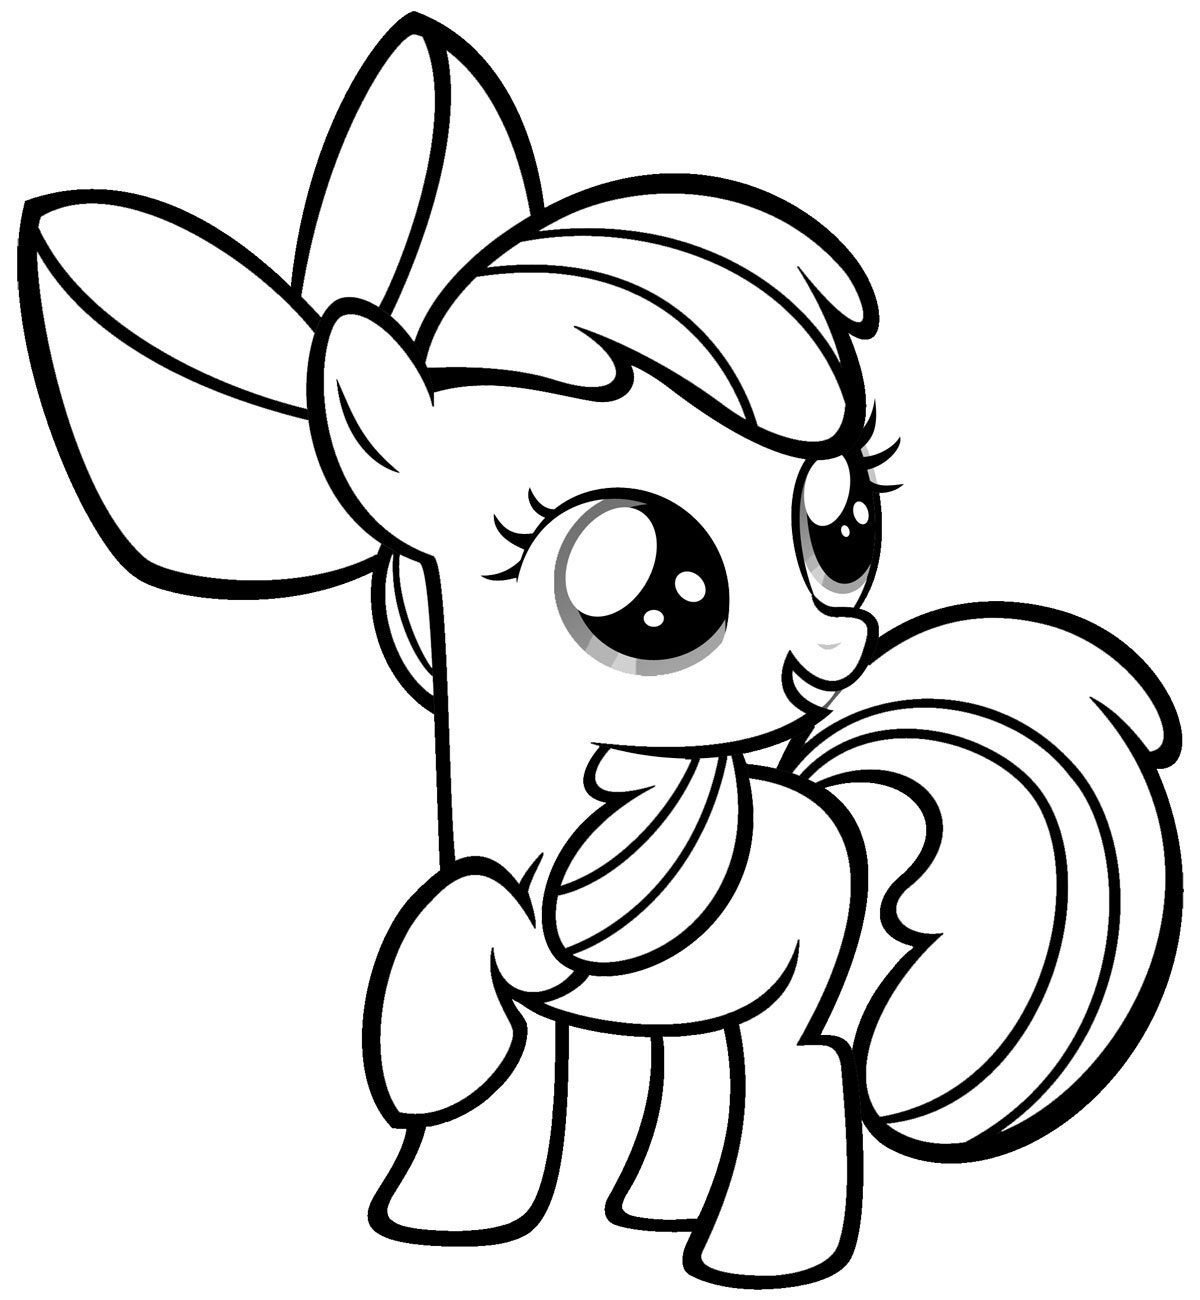 my little pony colouring pages to print free printable my little pony coloring pages for kids to pony colouring pages my little print